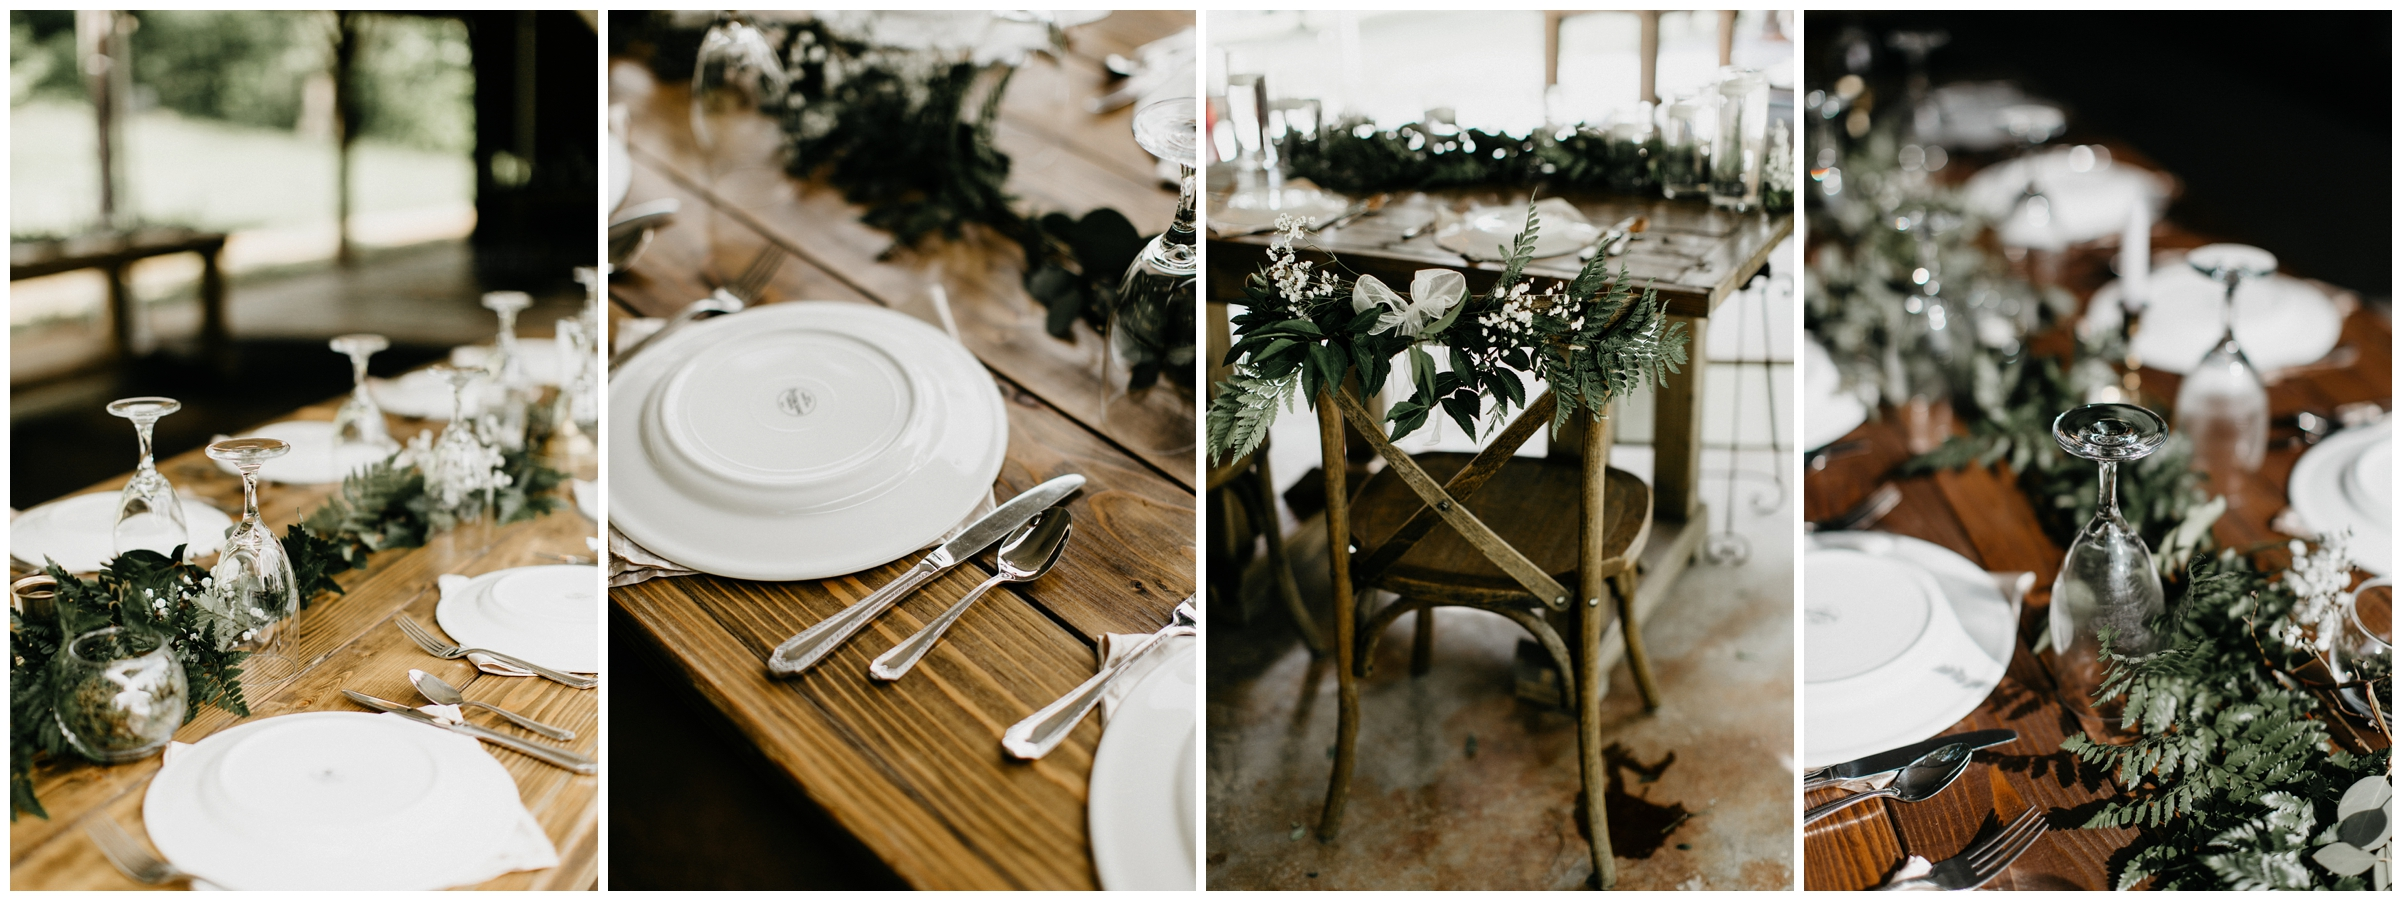 rustic chic outdoor wedding photography springfield missouri